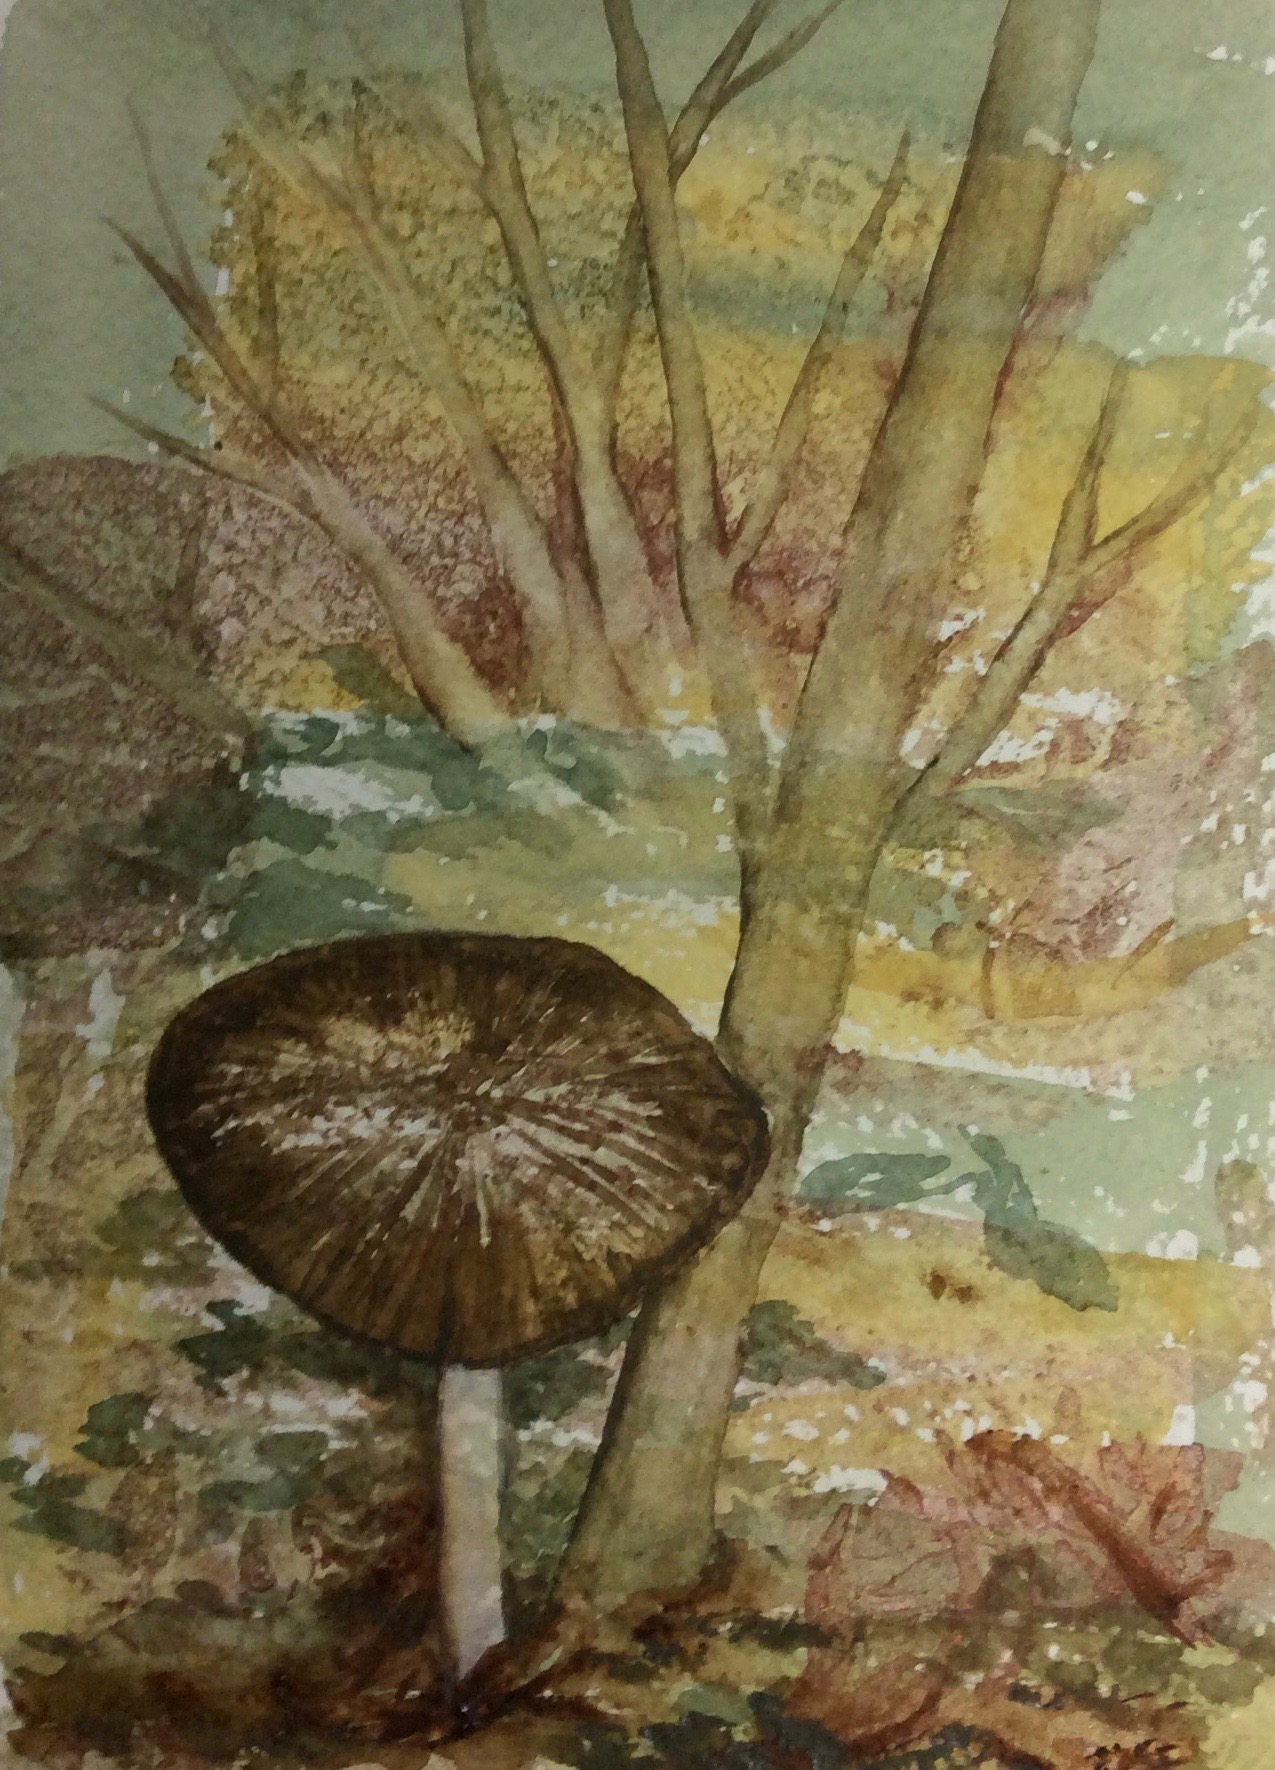 Here is the Solo Mushroom piece I did with the same palette, less water and patted down plastic wrap for the textured base. These are both 5x7